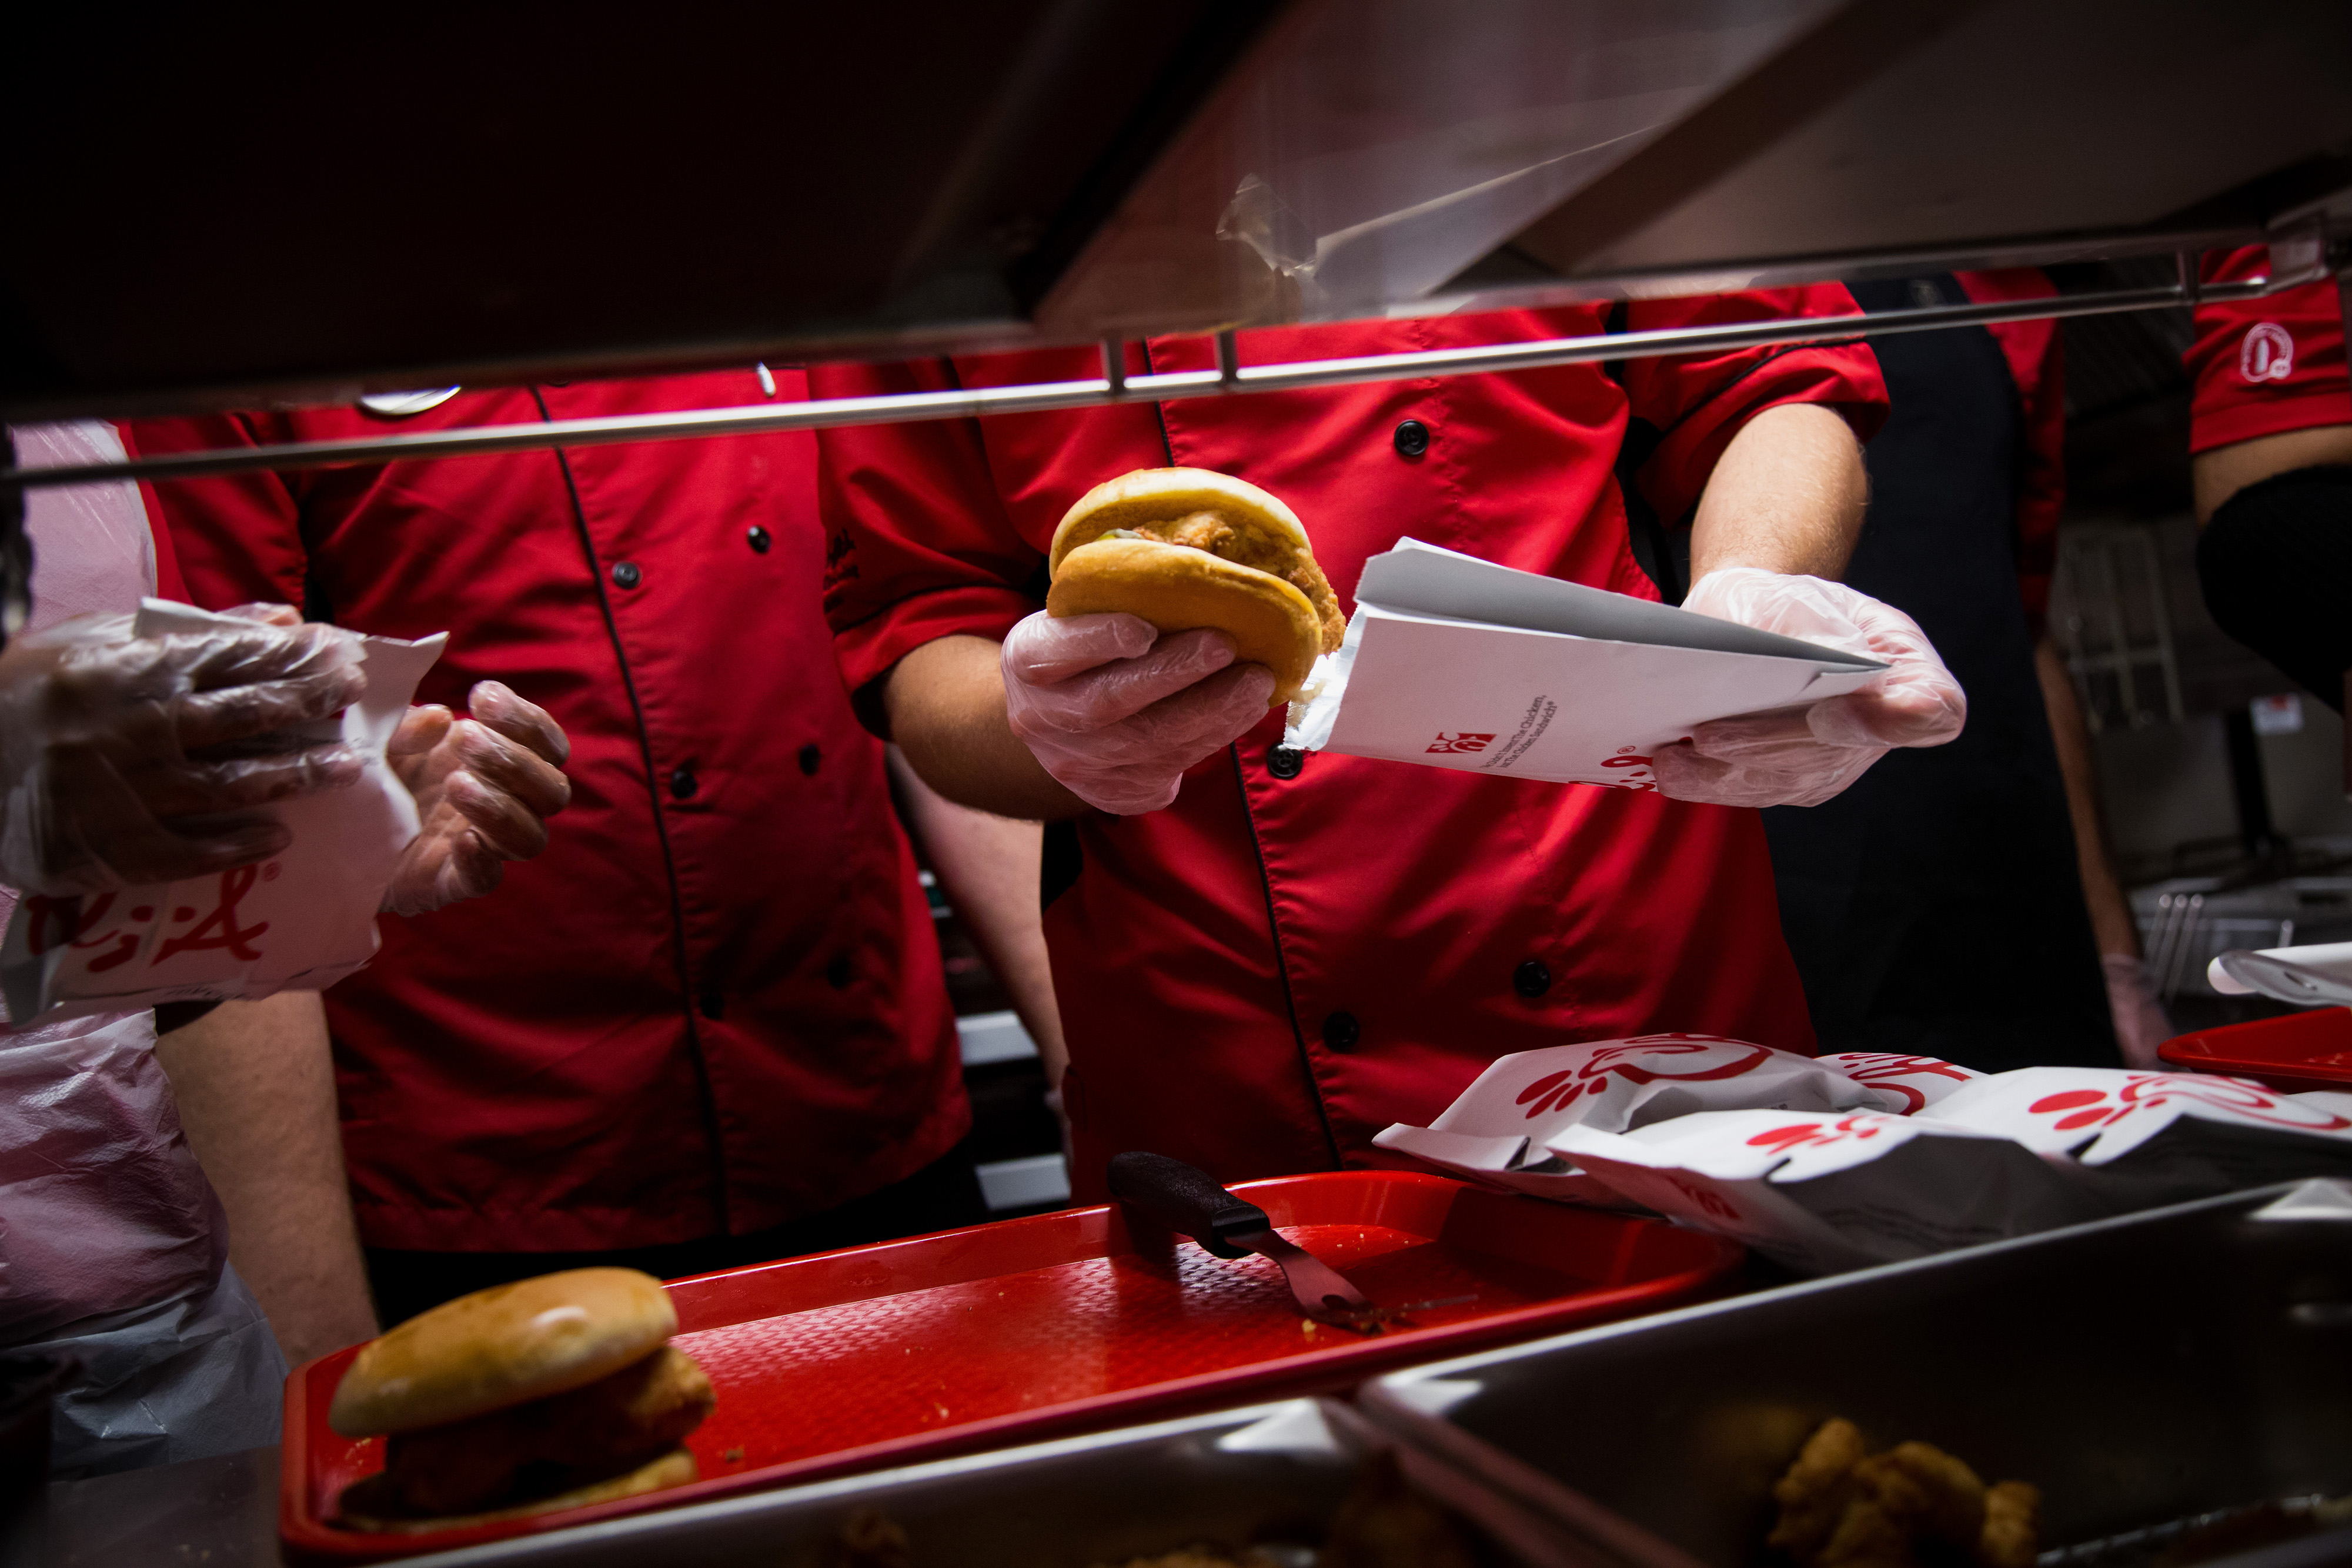 The sky is falling for fast food, but not for Chick-fil-A. Here's why.